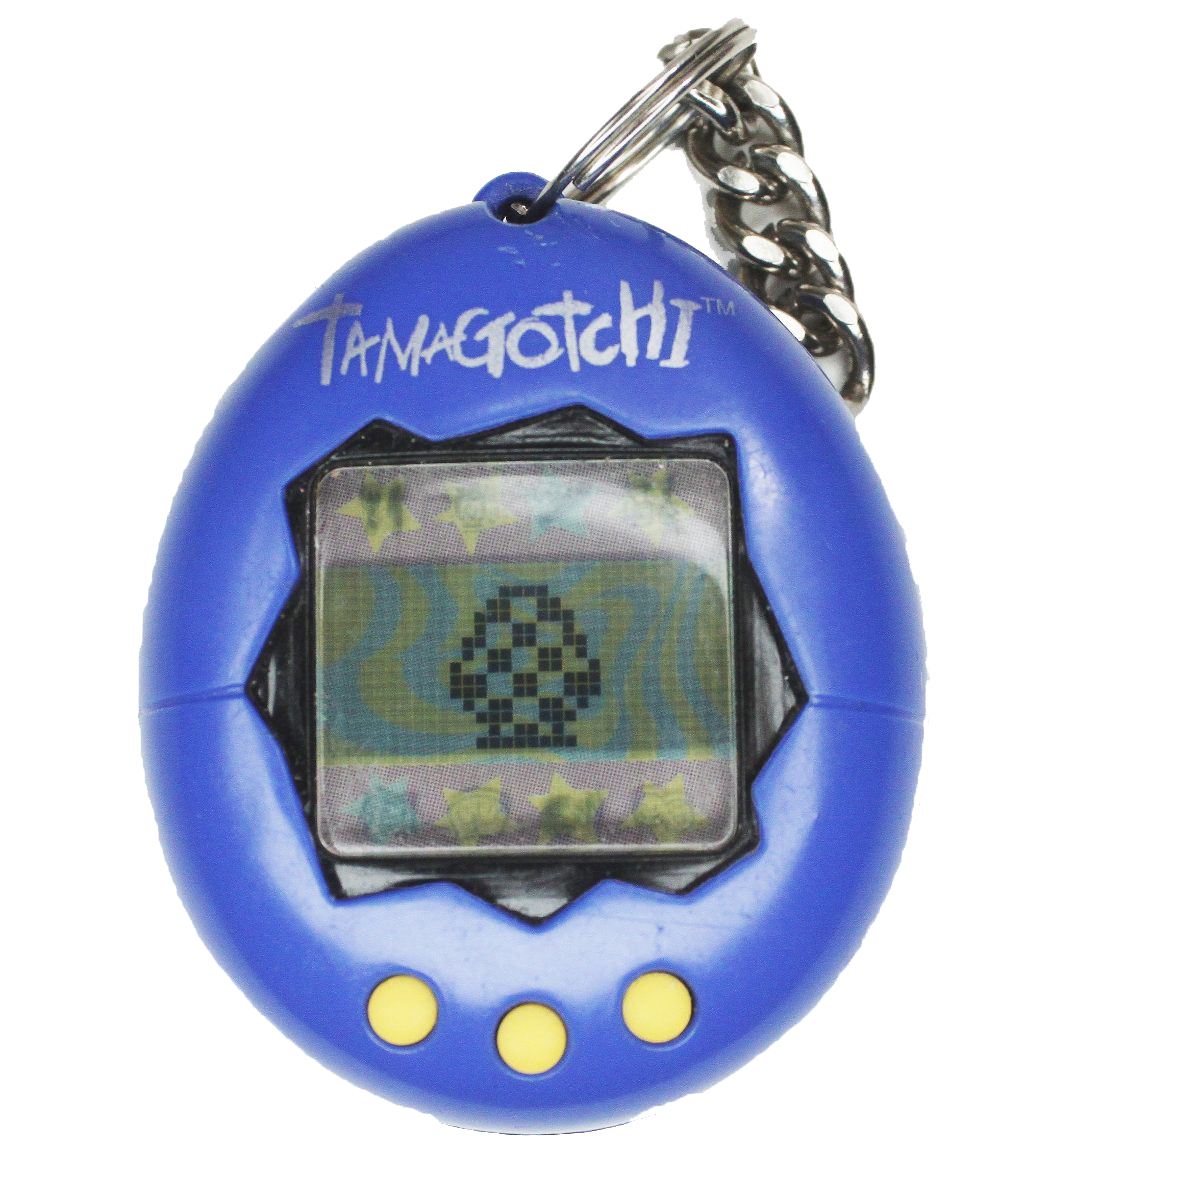 virtual pet 32 in 1 instructions